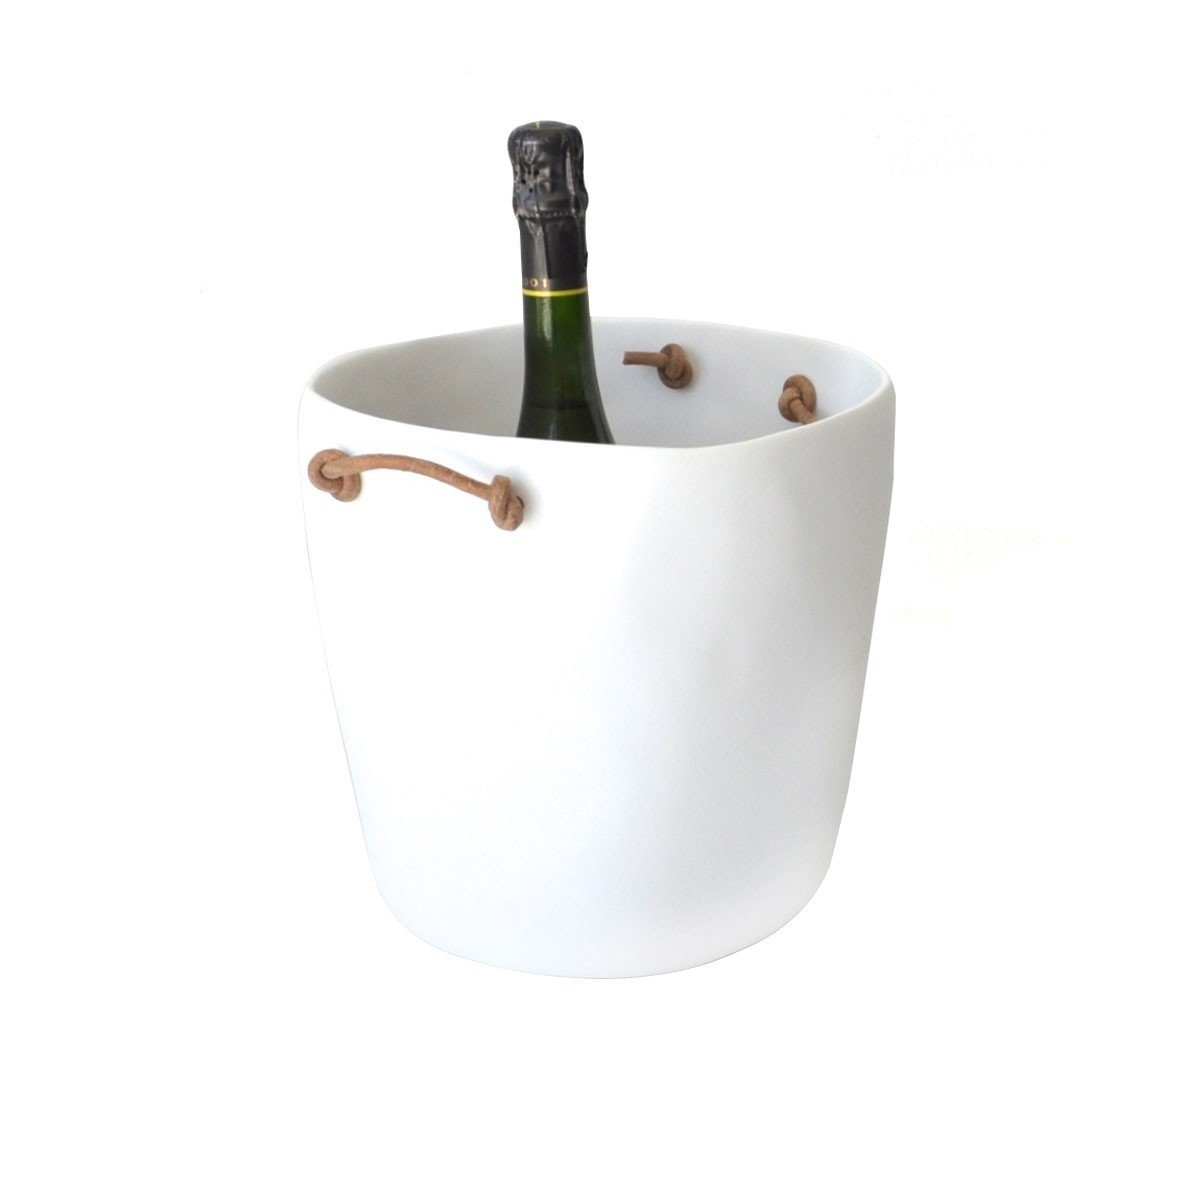 This champagne bucket by Tina Frey has a durable resin shell with knotted leather handles.  Modern Bar Accessories by Allie Weiss